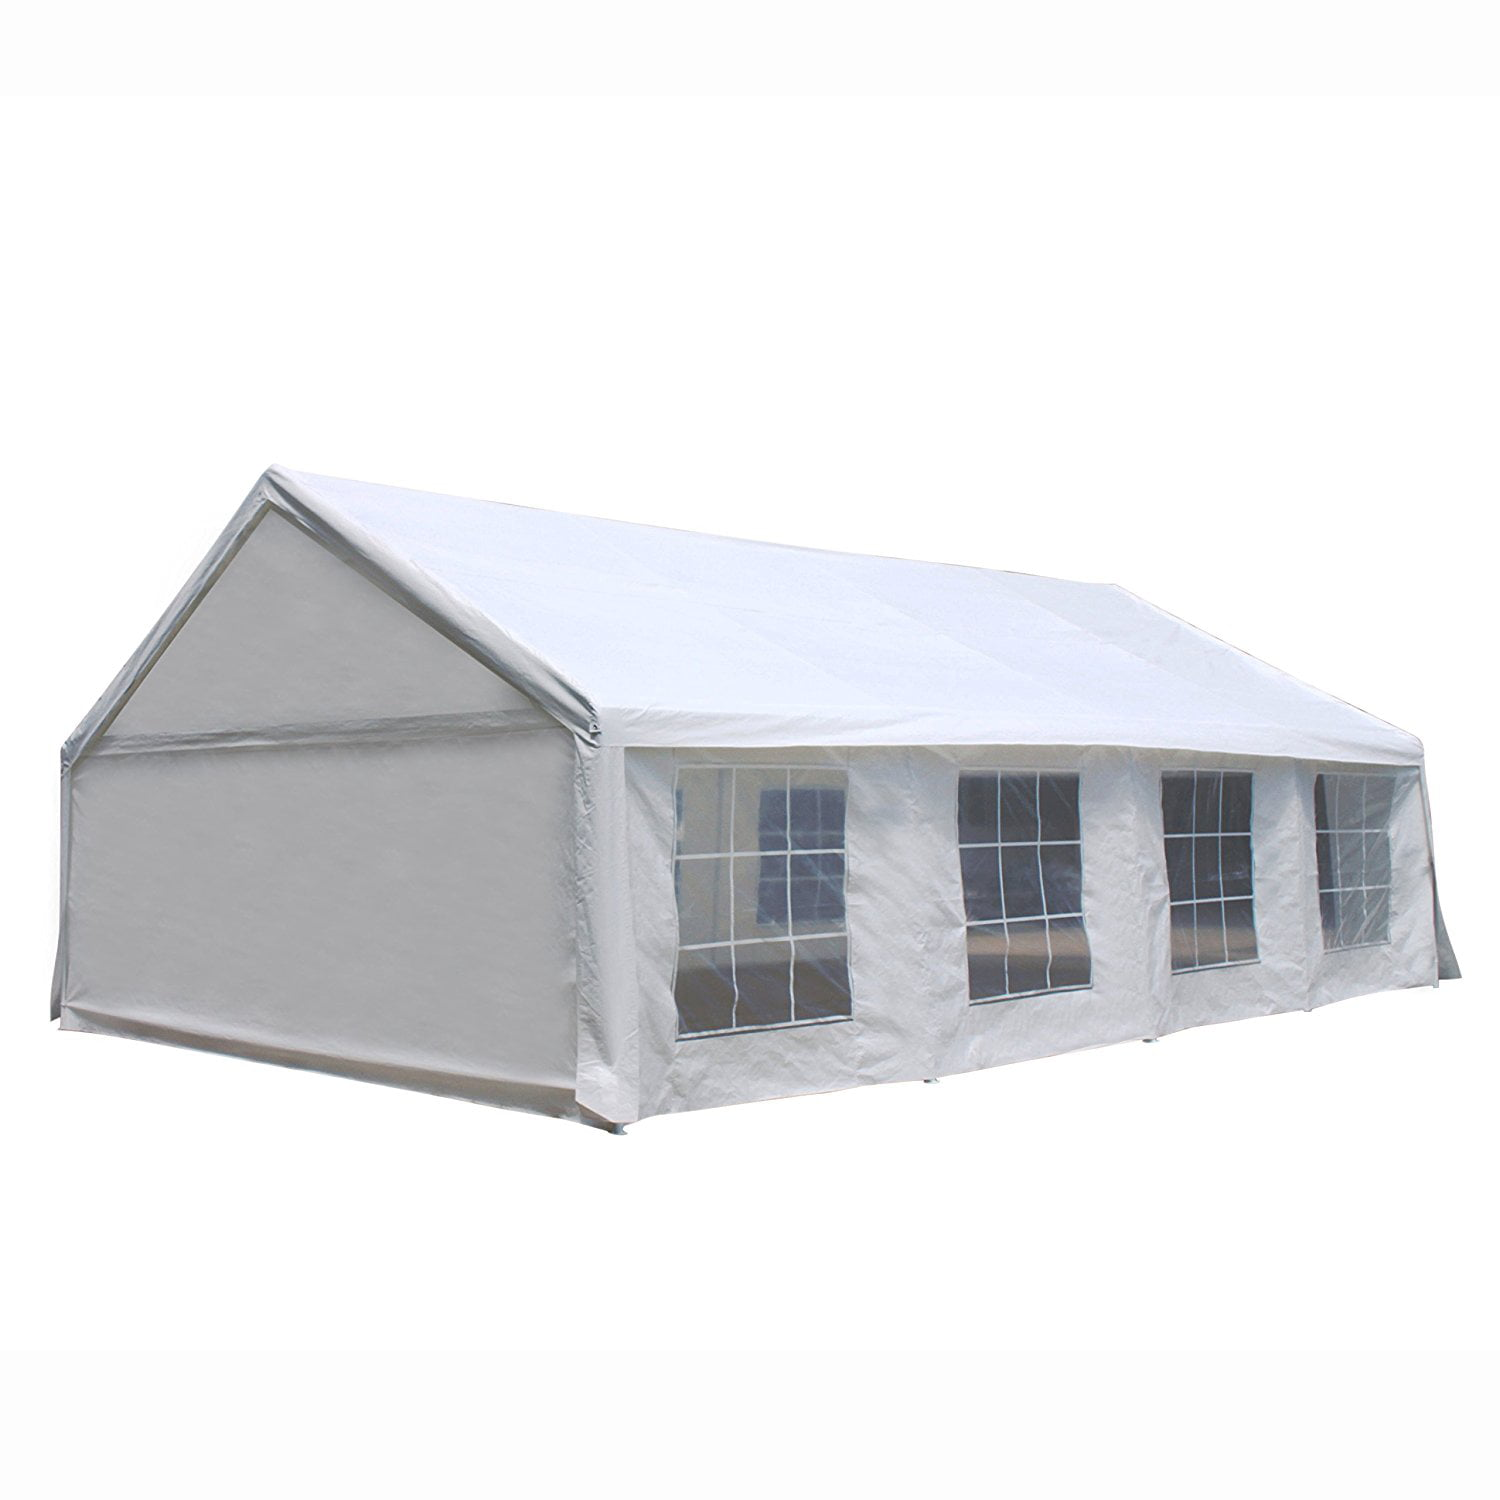 Aleko Heavy Duty Outdoor Canopy Tent with Windows 20 X 30 Feet White by ALEKO